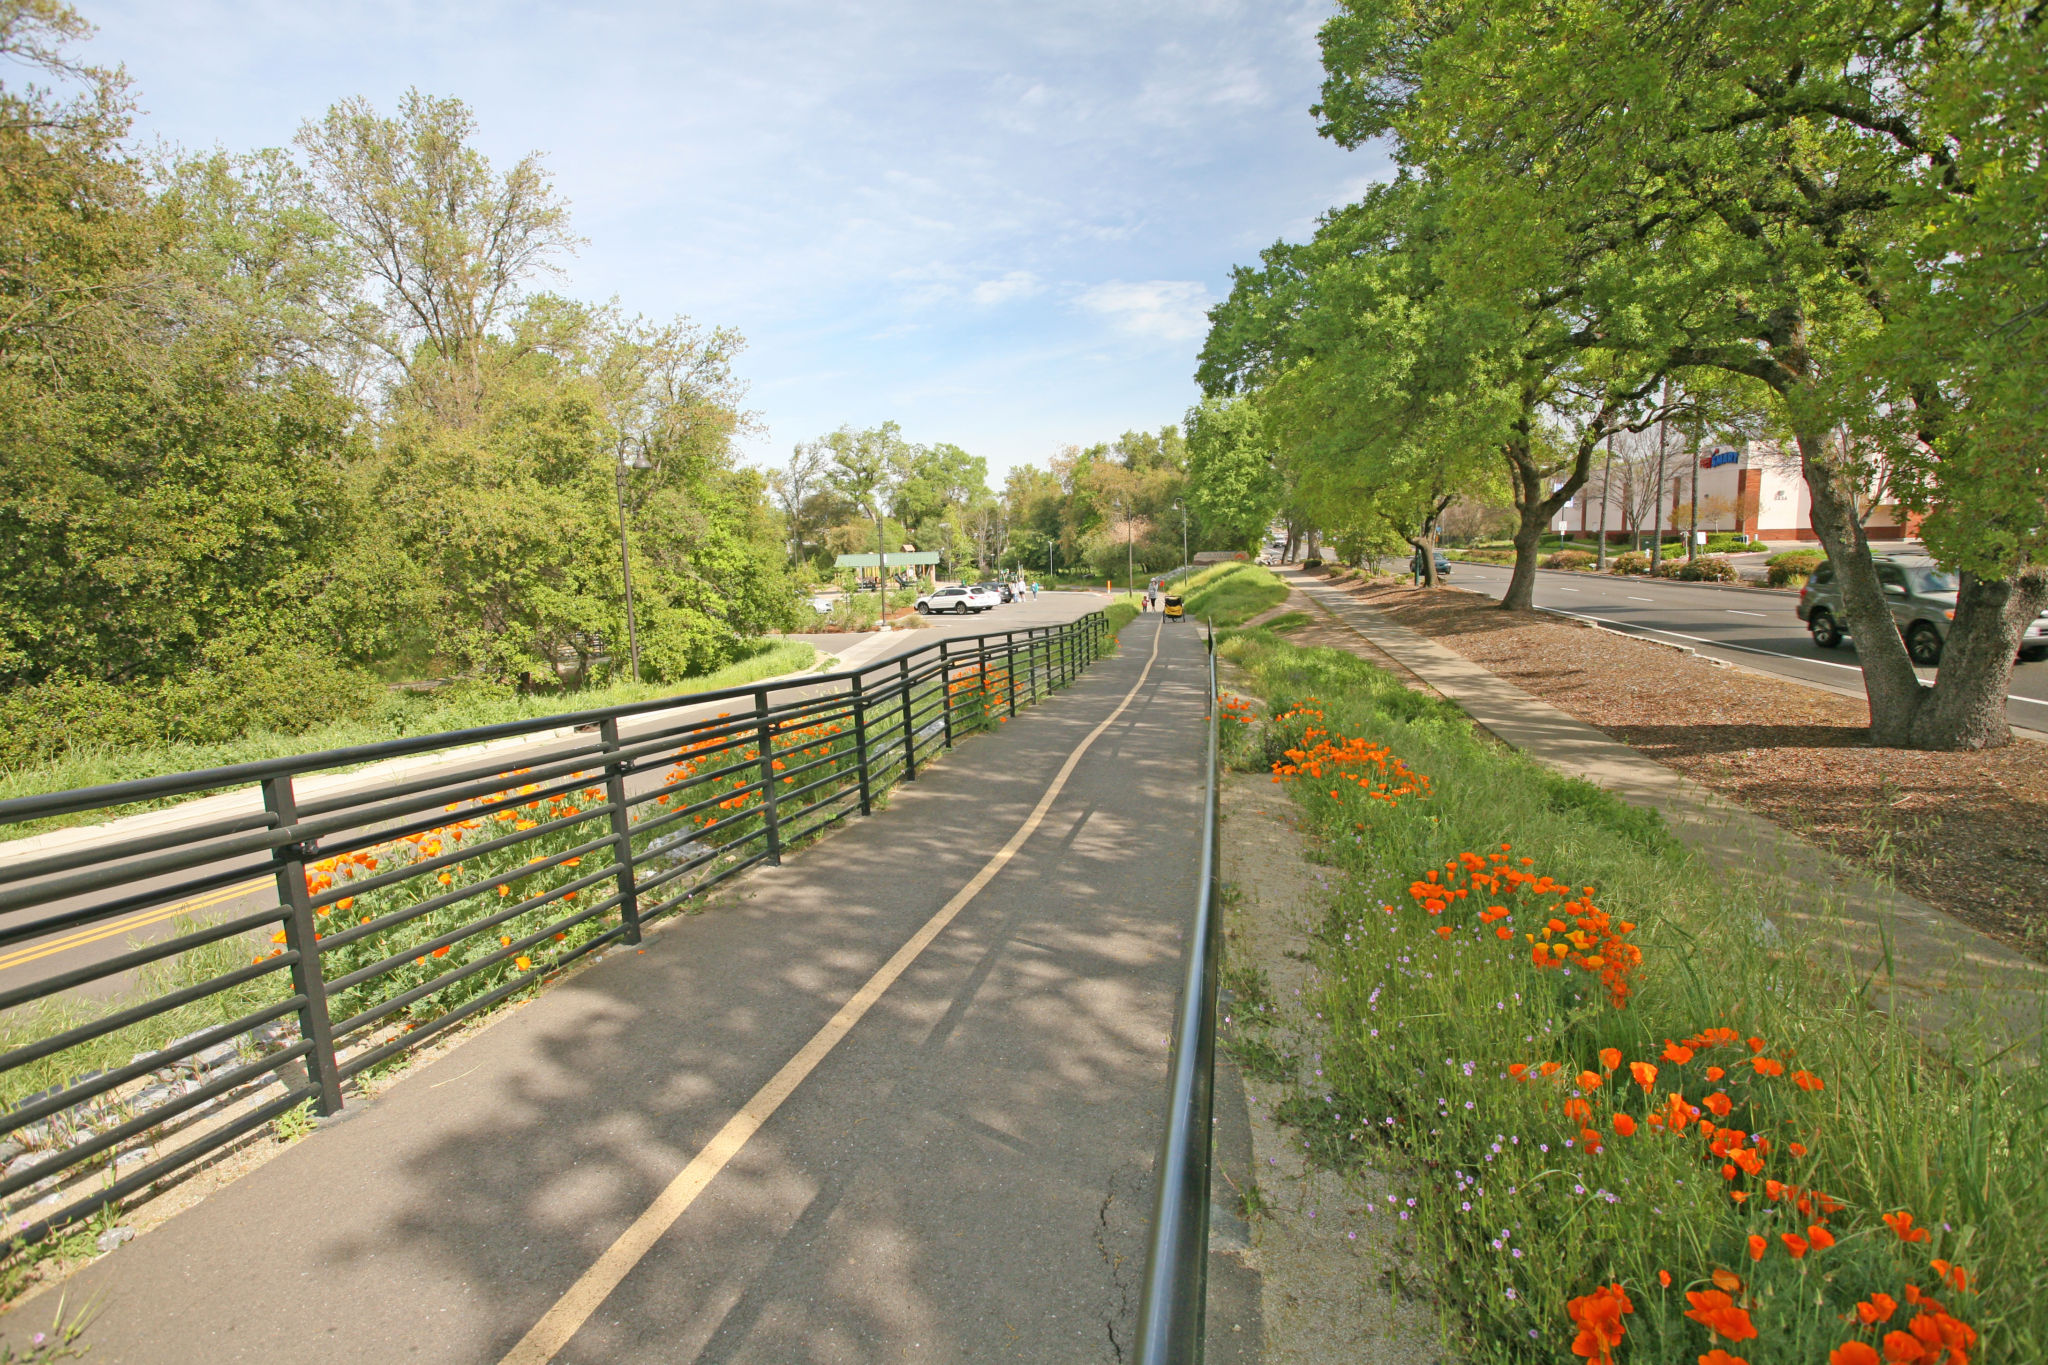 Trail to parking lot has ADA-compliant hand rails and landings.